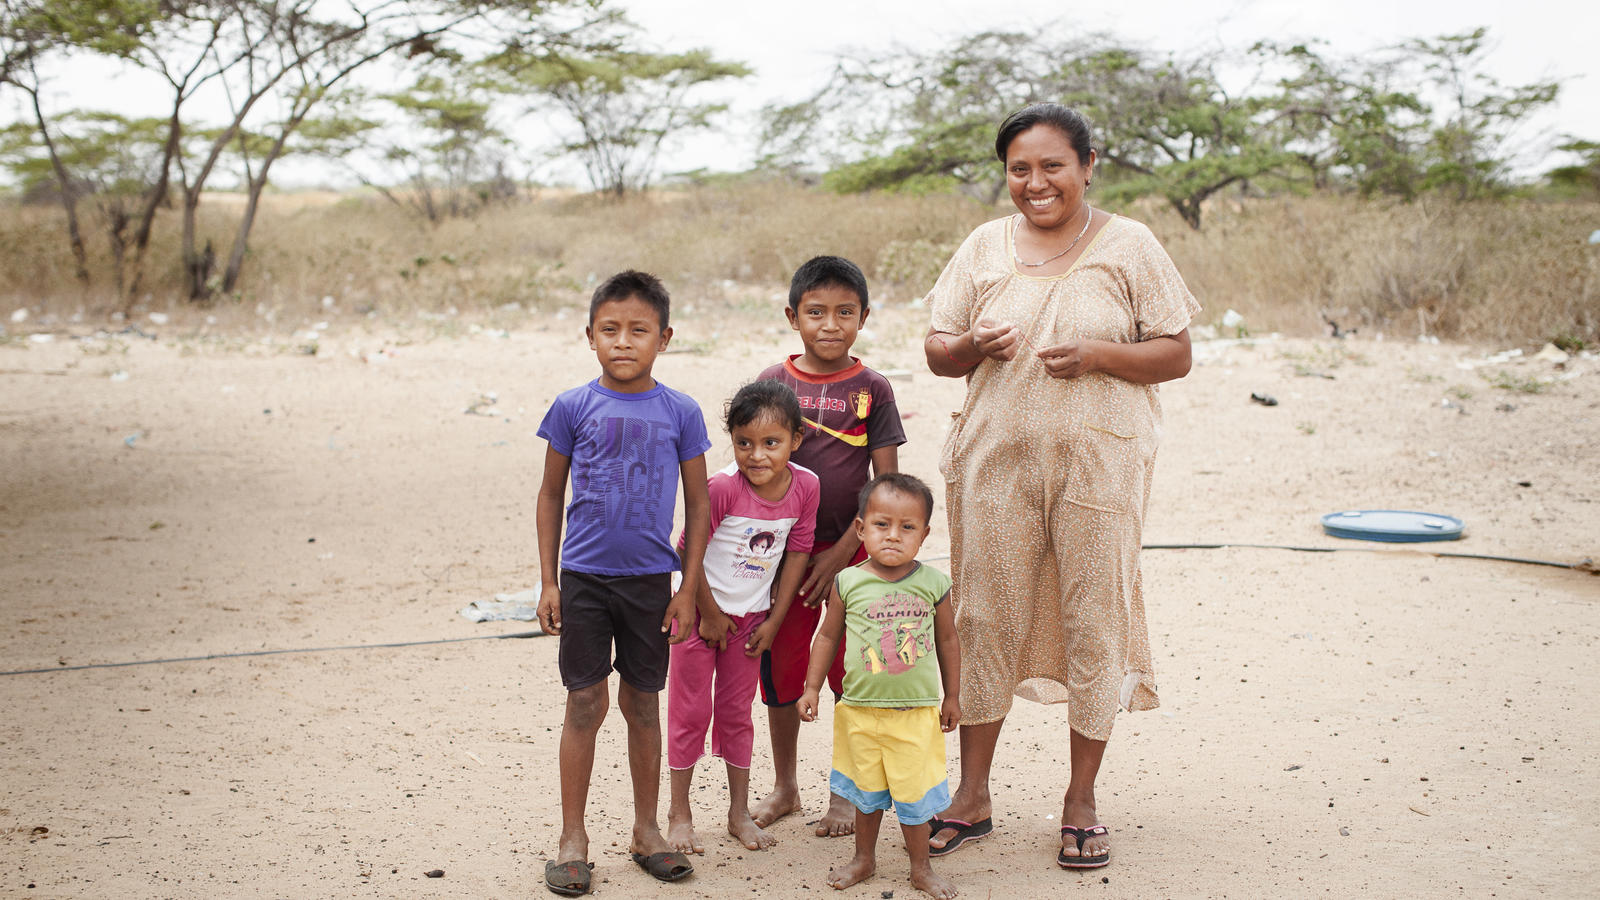 Rosalba Gonzalez, 34, with her four kids at their house in Wayuuma'ana, Maicao, La Guajira, Colombia. March 2017.